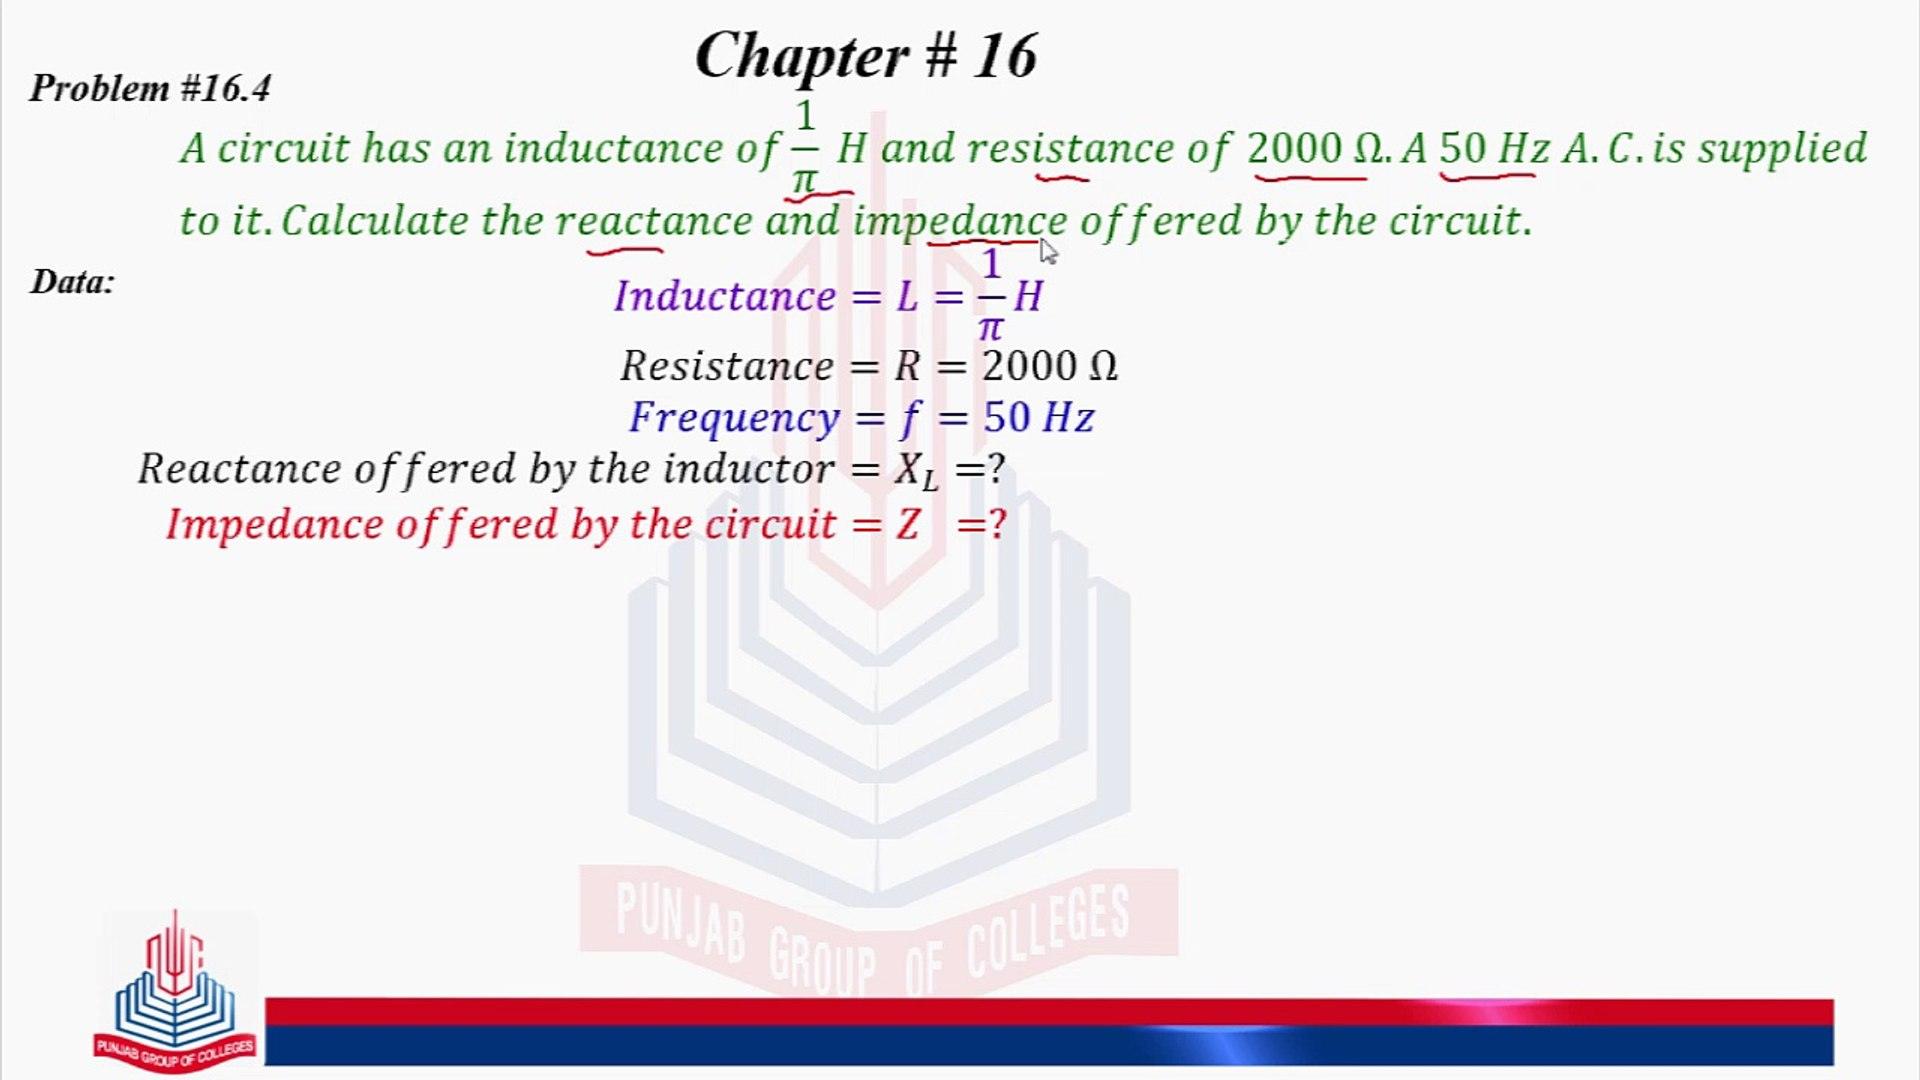 Ac Inductor Circuits Reactance And Impedance Inductive